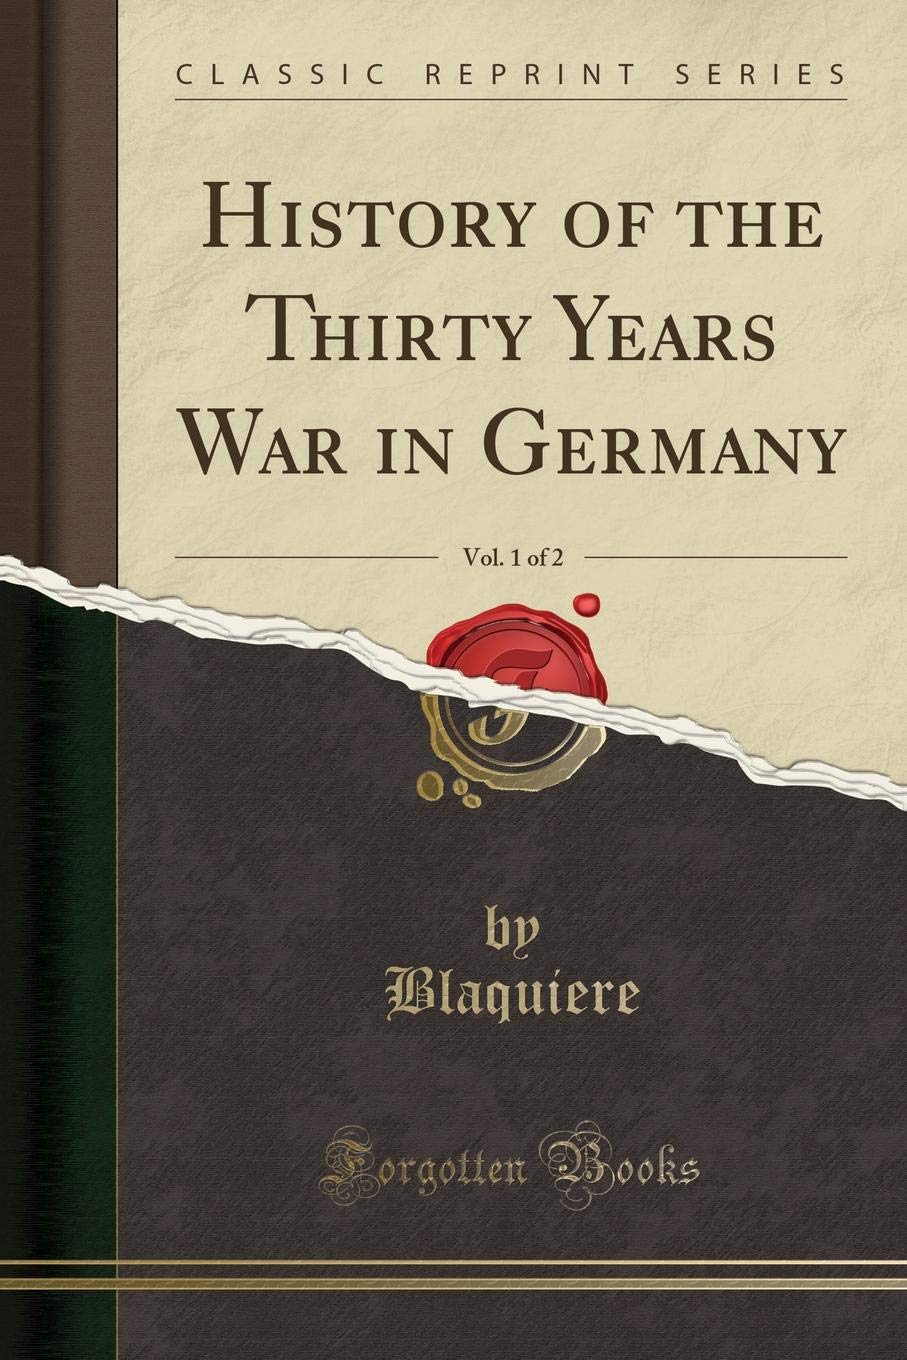 History of the Thirty Years War in Germany, Vol. 1 of 2 (Classic Reprint) ebook